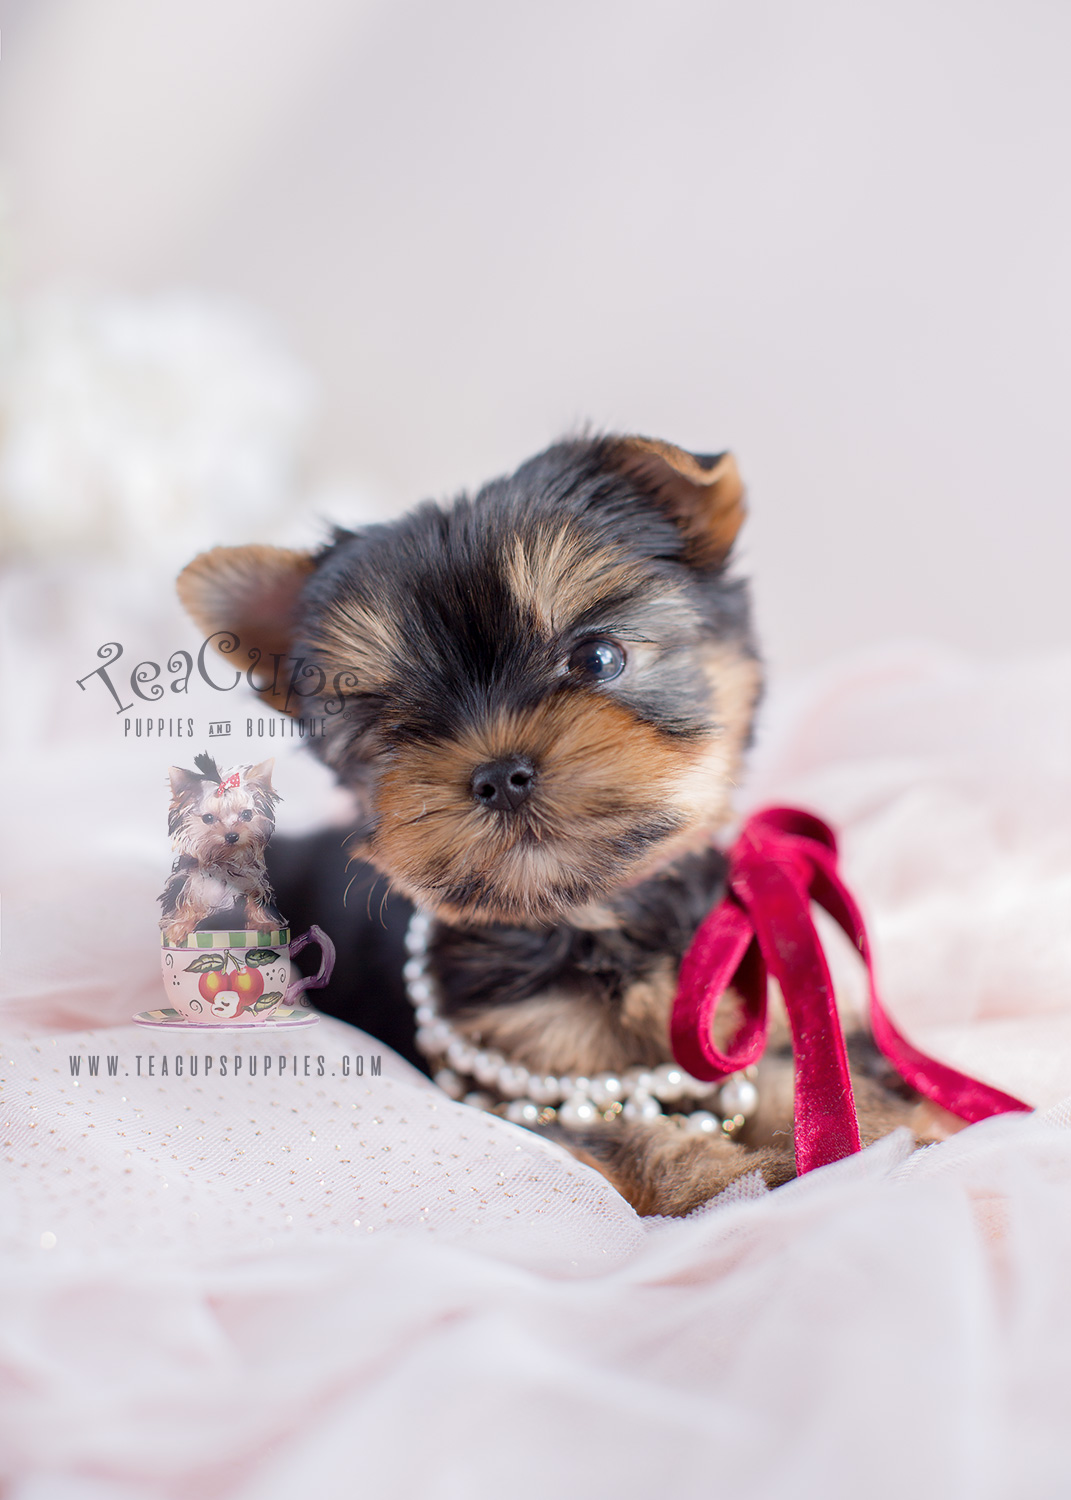 Yorkie Puppies For Sale Teacup Puppy Boutique